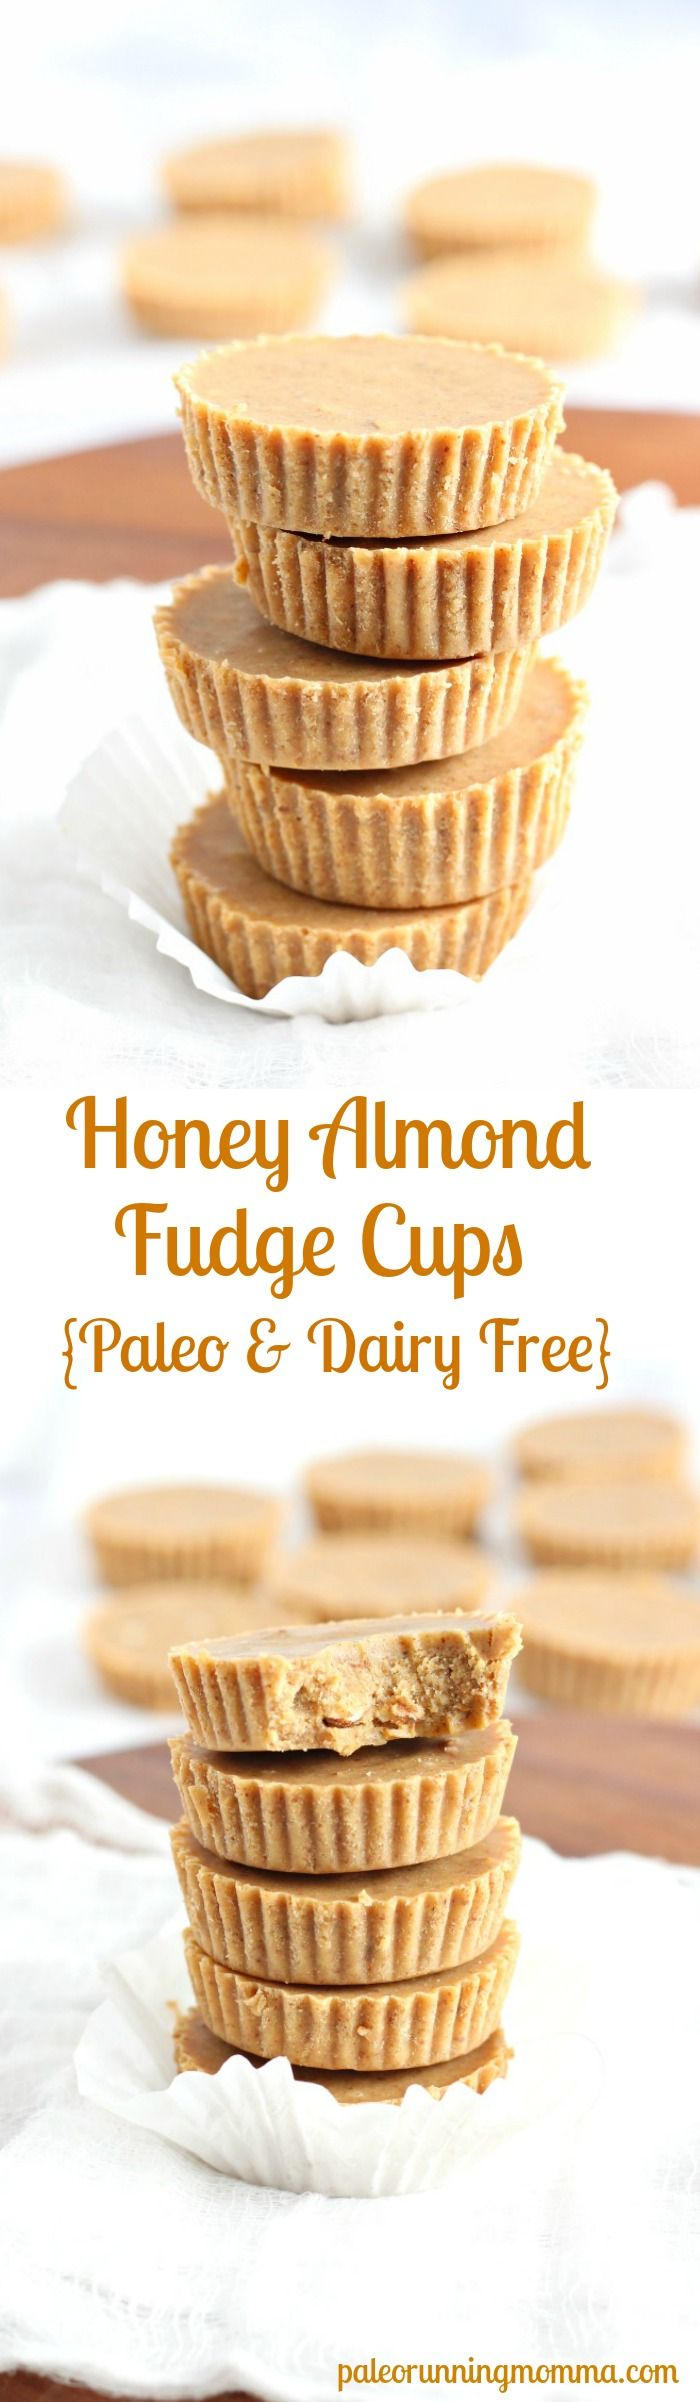 Healthy and super easy 5 ingredient, no cook Honey Almond Fudge Cups! Gluten free, Paleo, dairy free, seriously amazing treat that you won't believe is actually healthy! paleorunningmomma.com